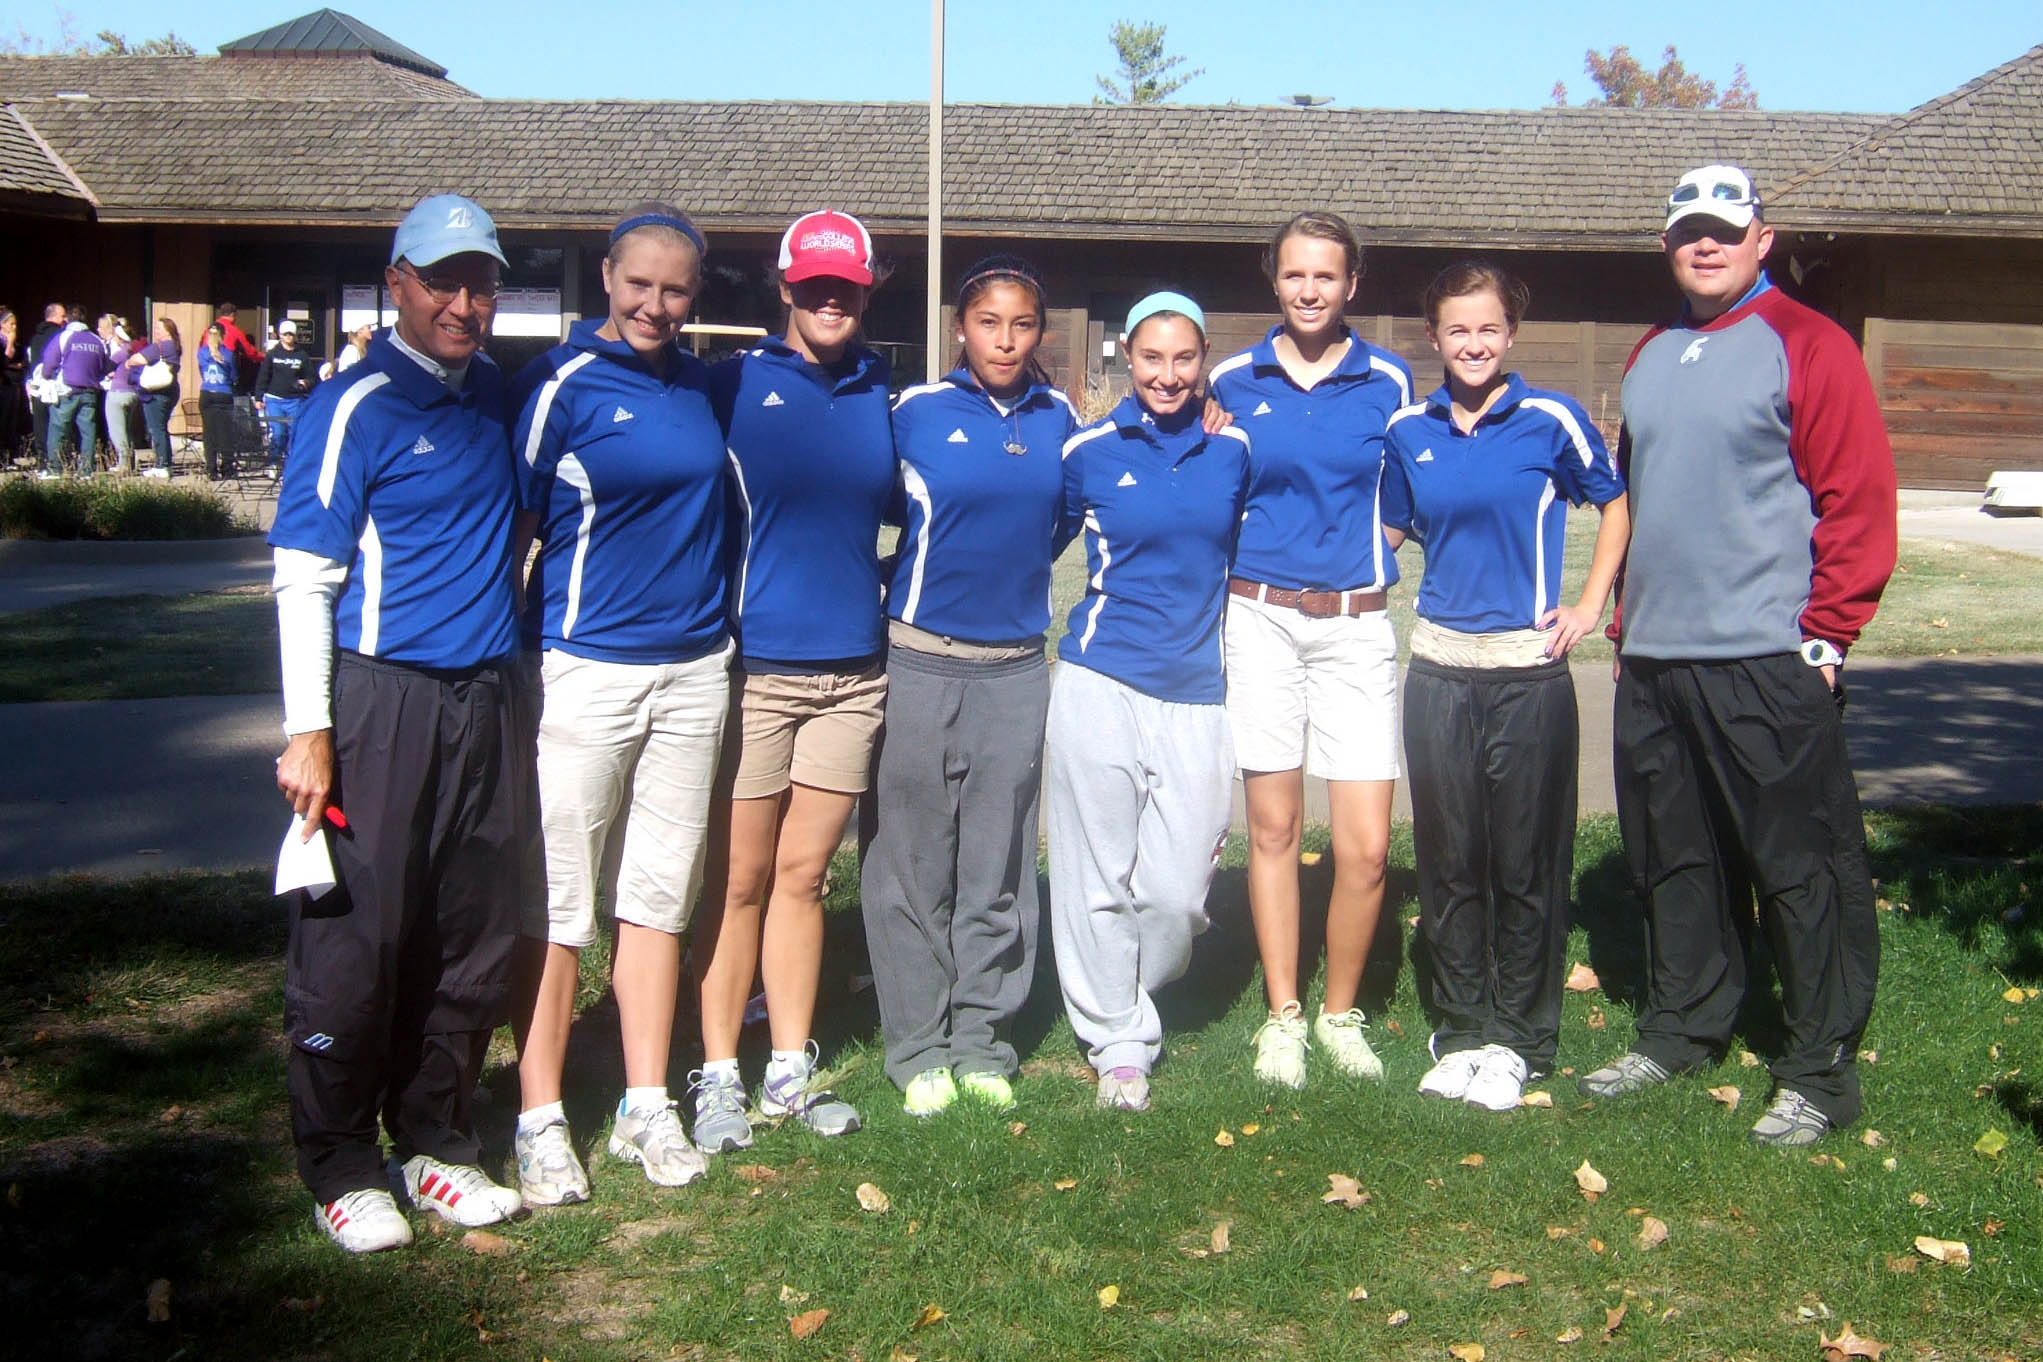 Record-breaking girls golf team competes at State